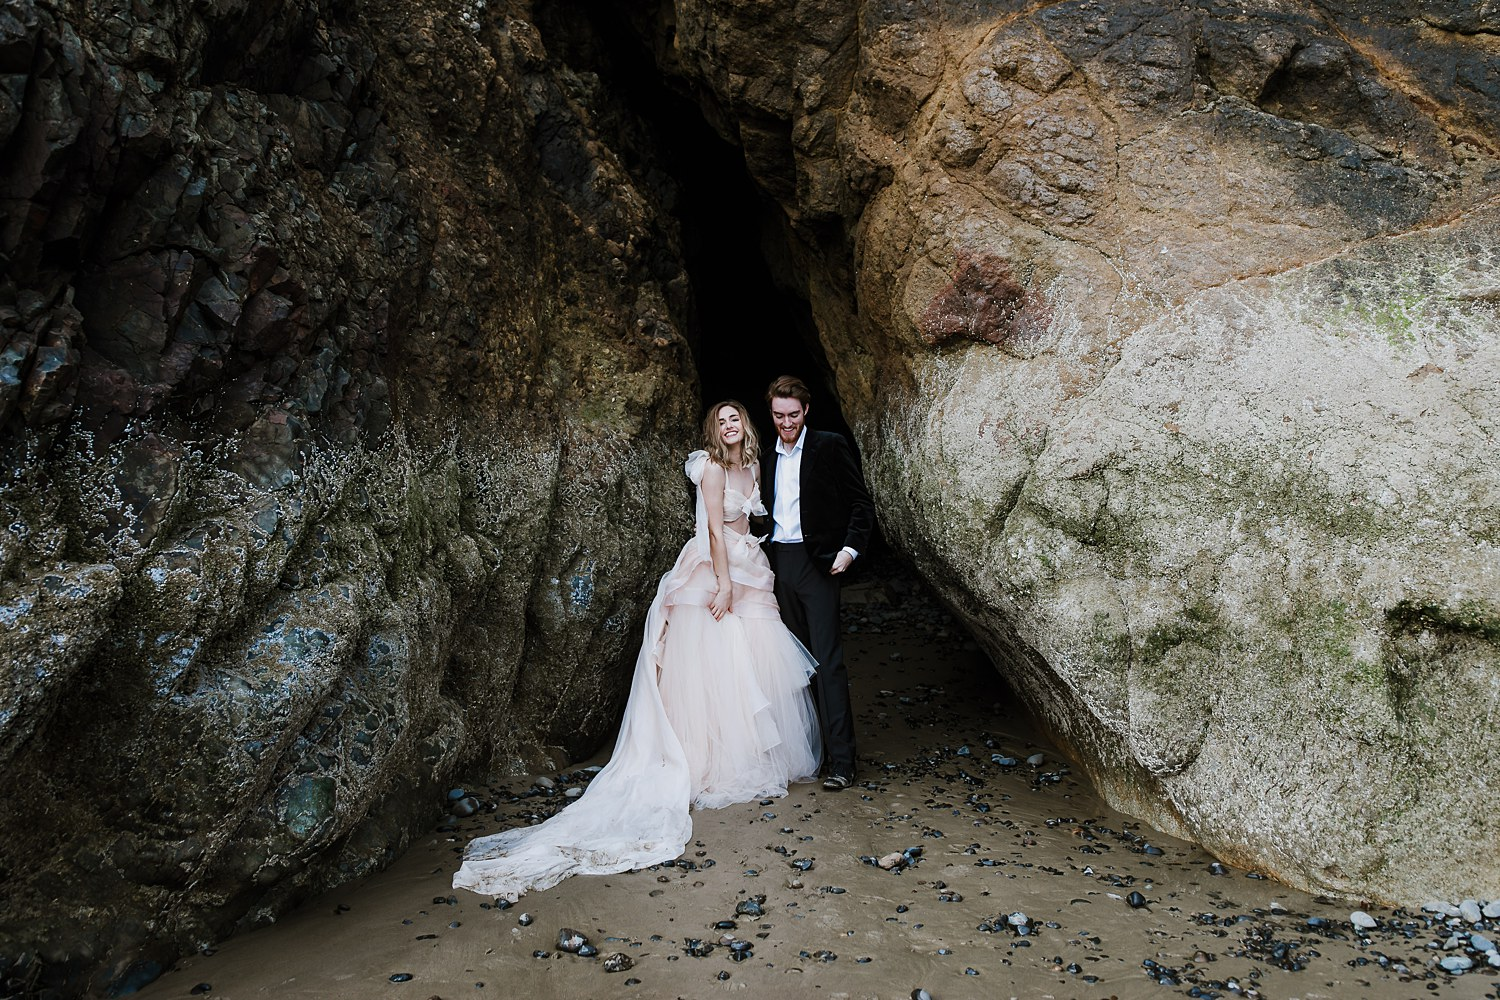 Newlywed couple laughs inside a cave on the beautiful Oregon coastline.